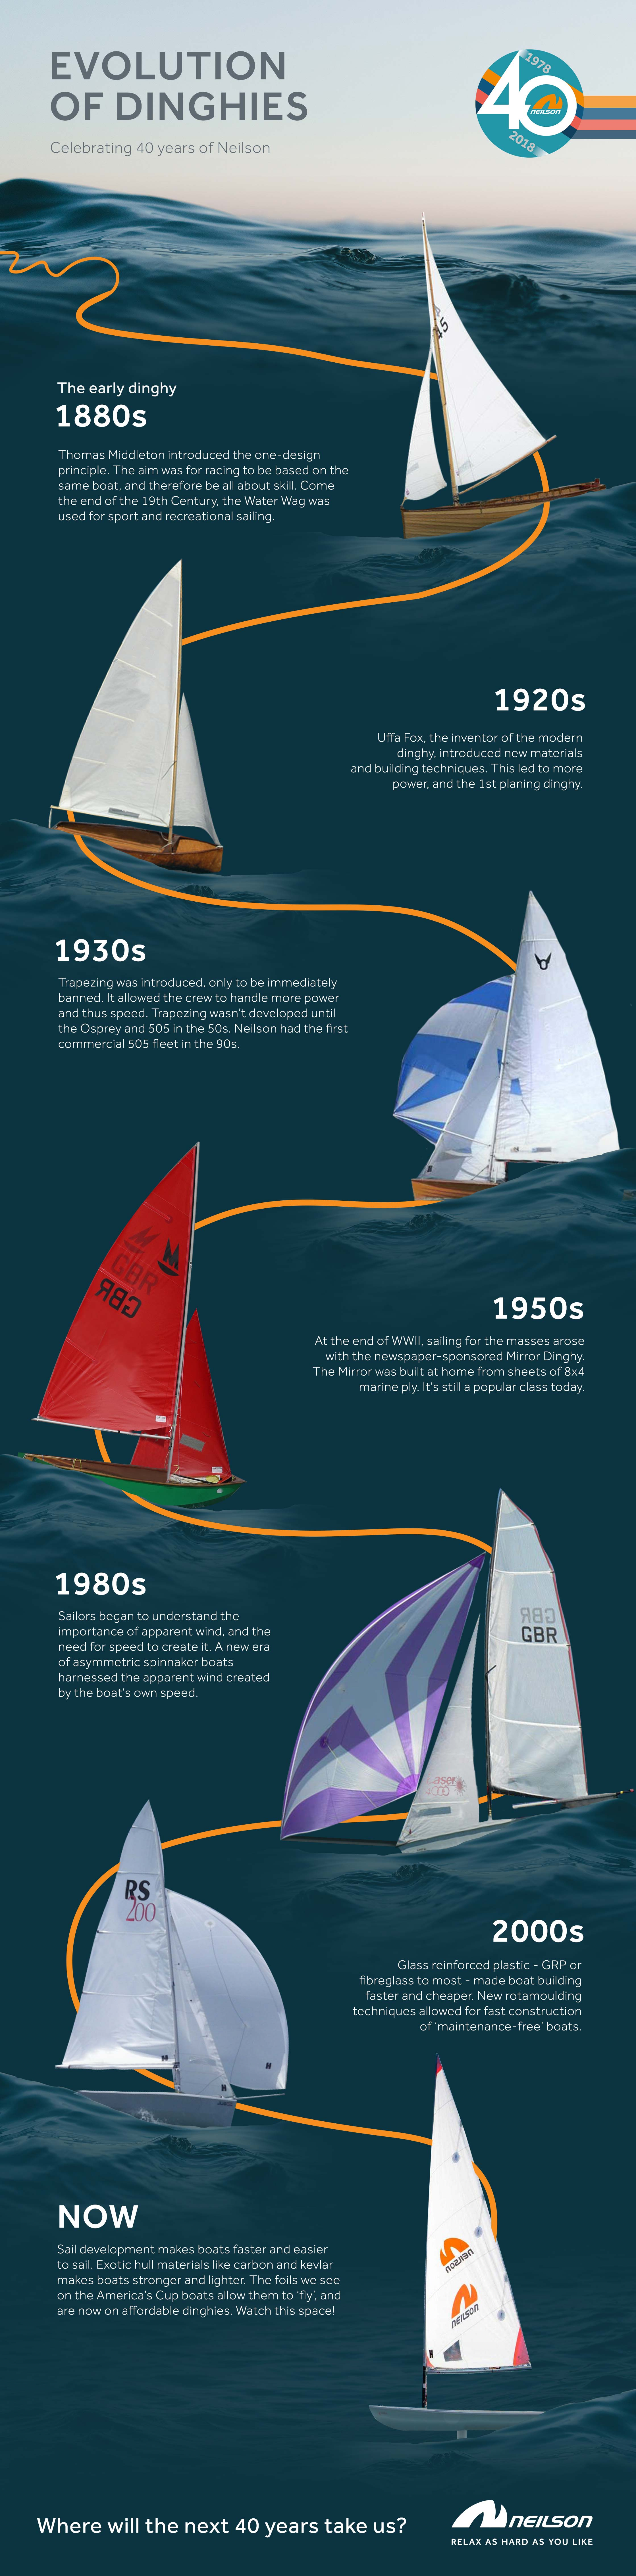 Evolution of Dinghies Infographic